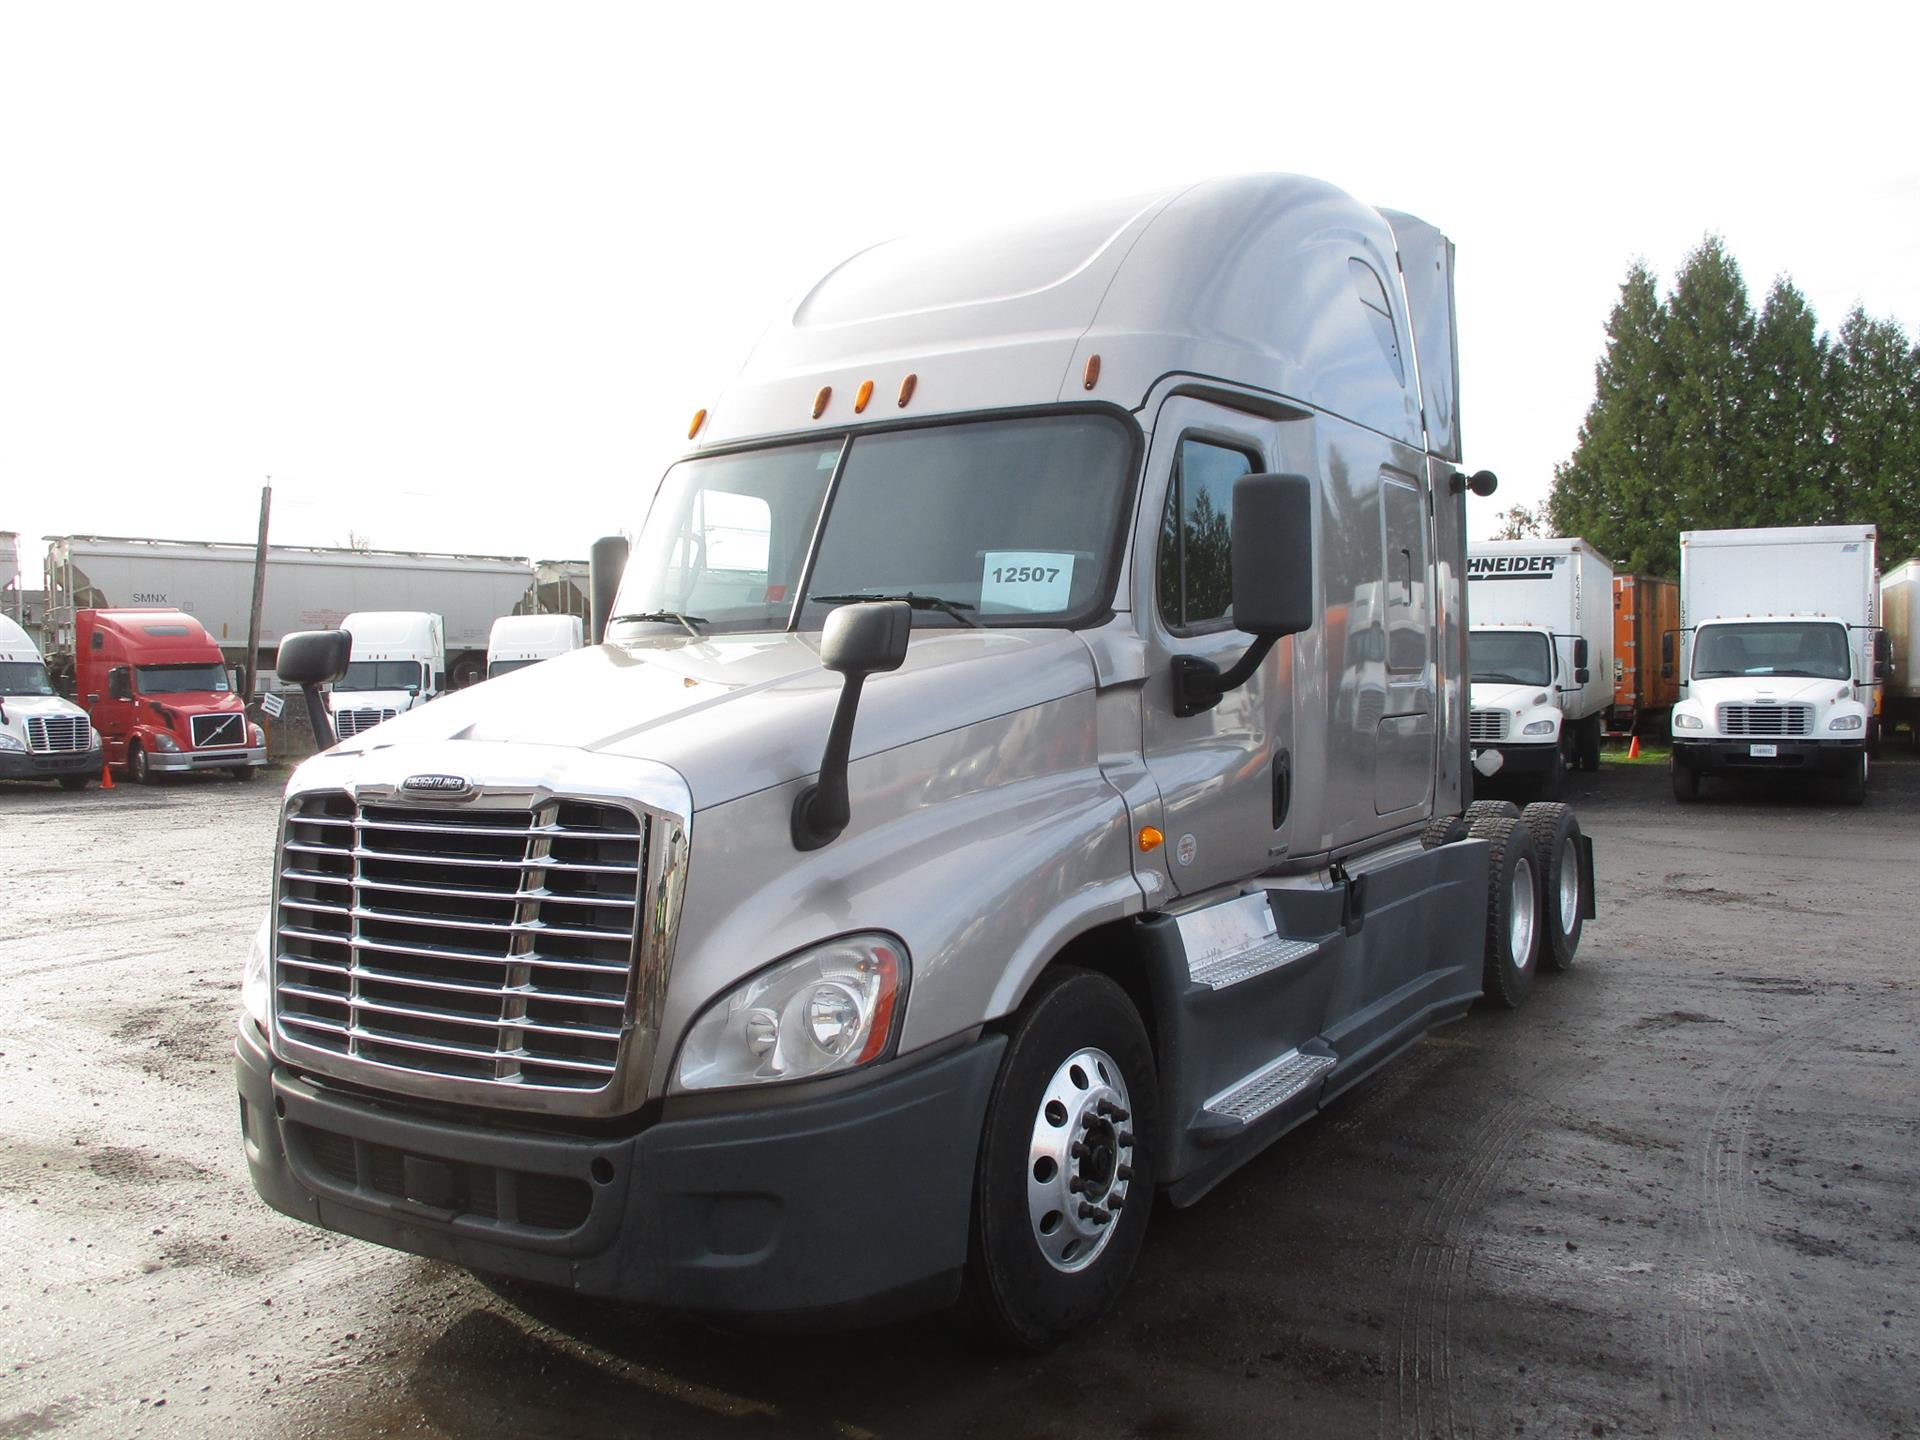 USED 2014 FREIGHTLINER CASCADIA DAYCAB TRUCK #84068